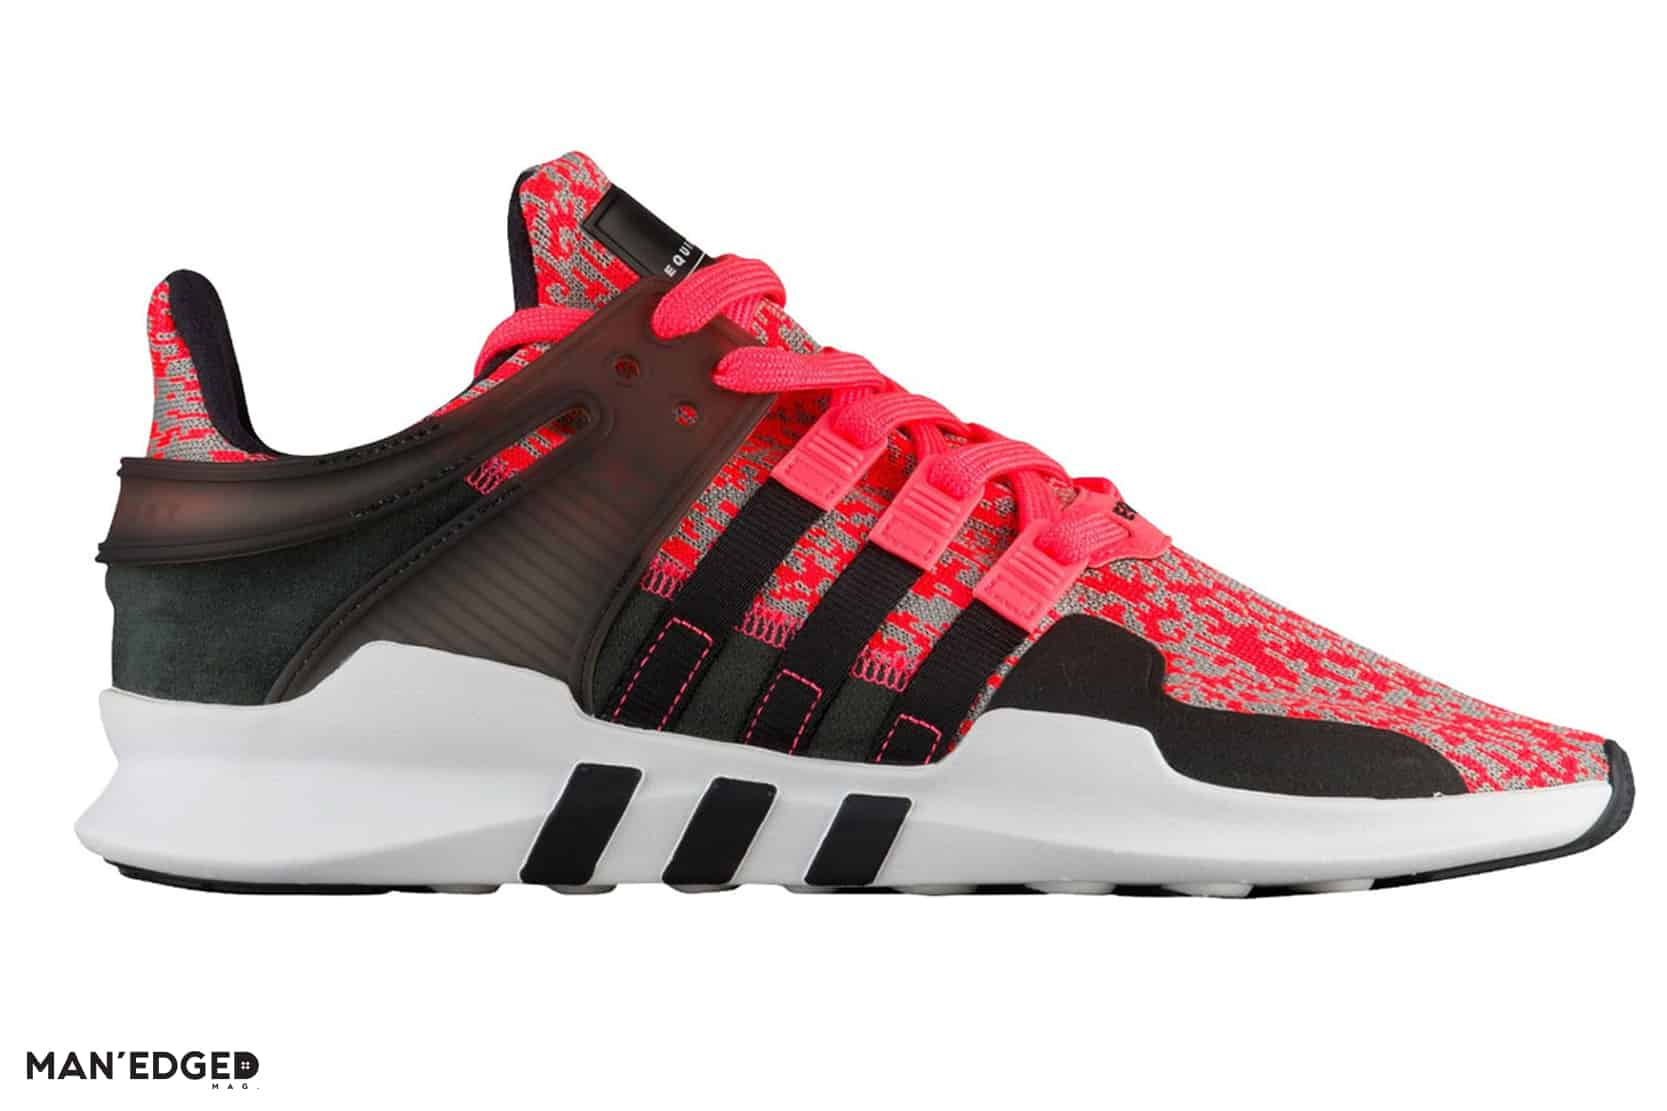 How to Gift to the Athleisure Obsessed Man featuring men's Adidas Originals EQT shoes